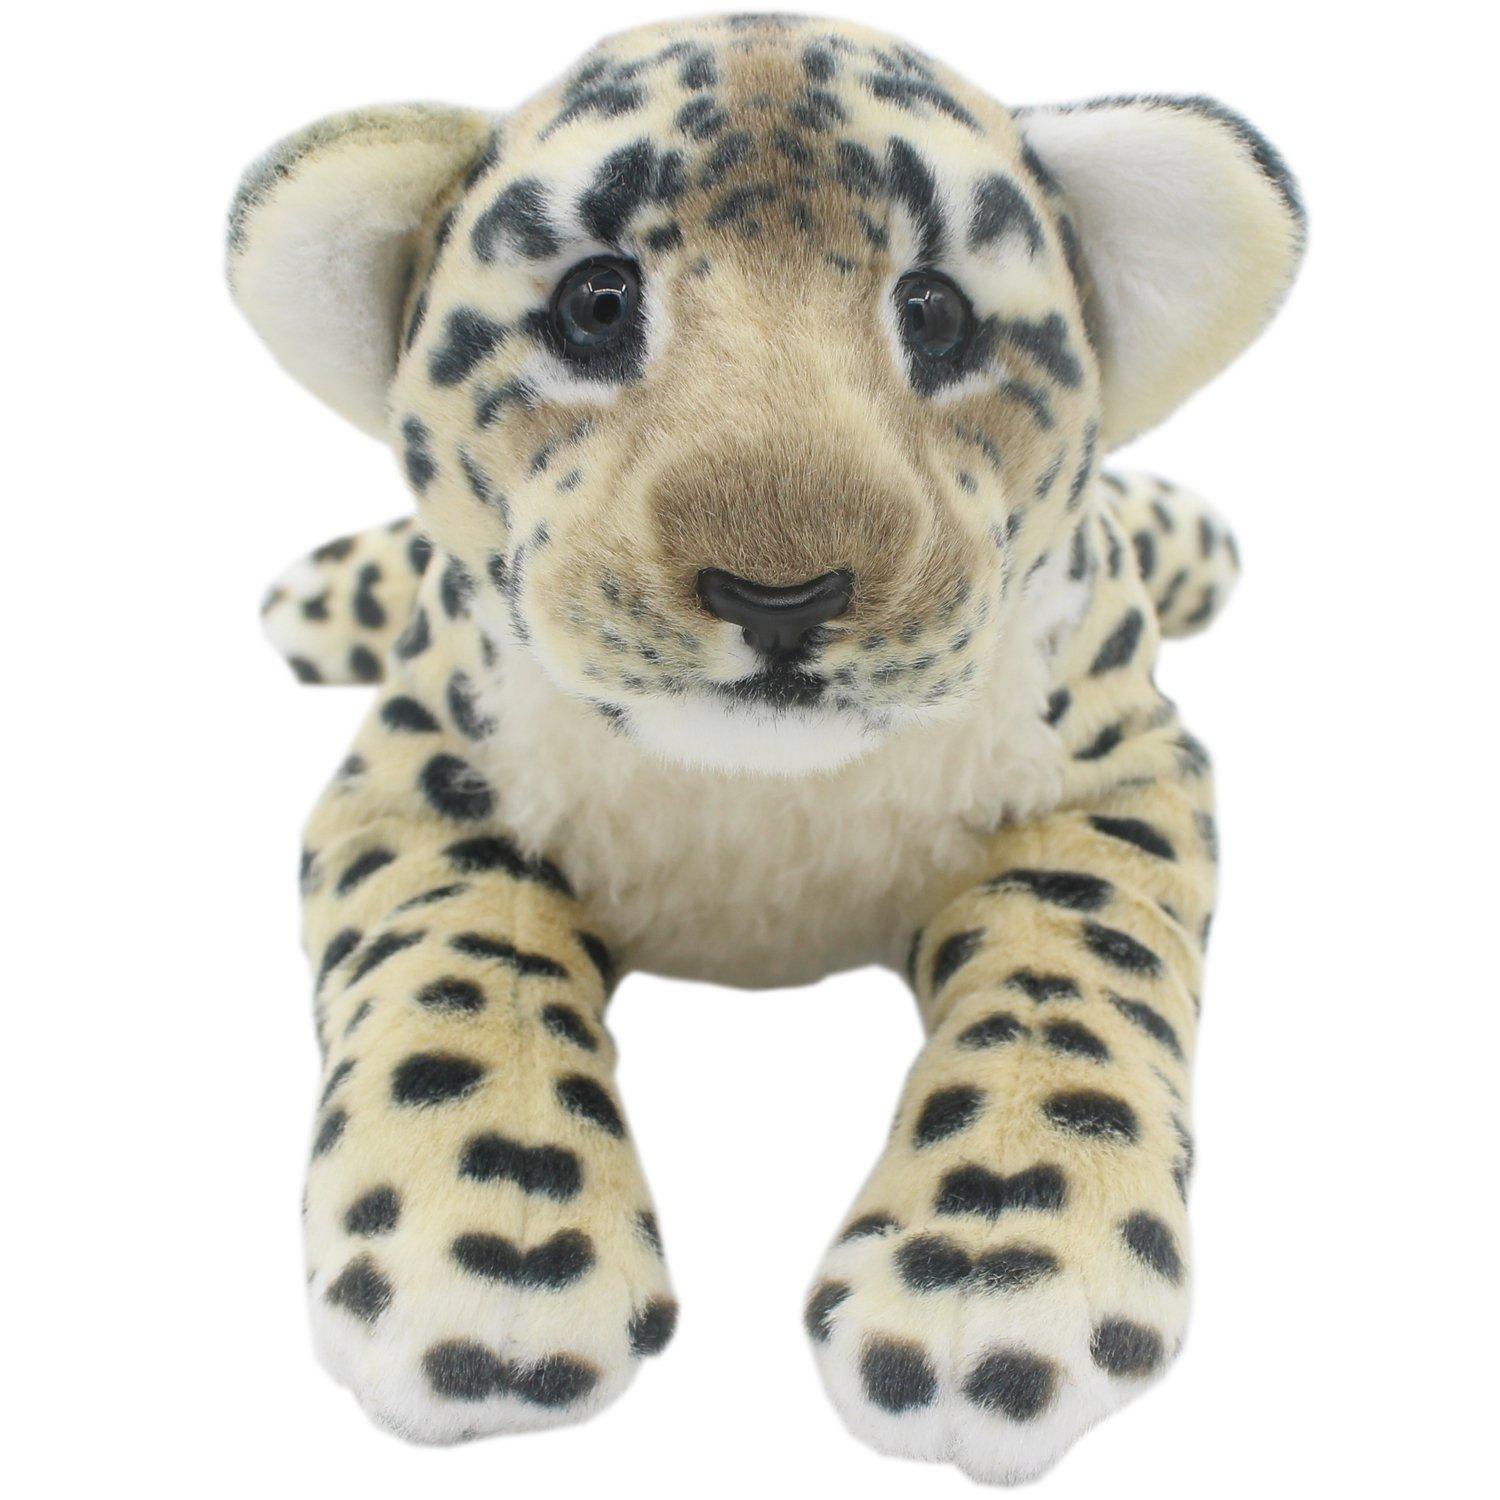 TAGLN The Jungle Animals Stuffed Plush Toys Cheetah Tiger Panther Lioness Pillows (Brown Leopard, 24 Inch) by TAGLN